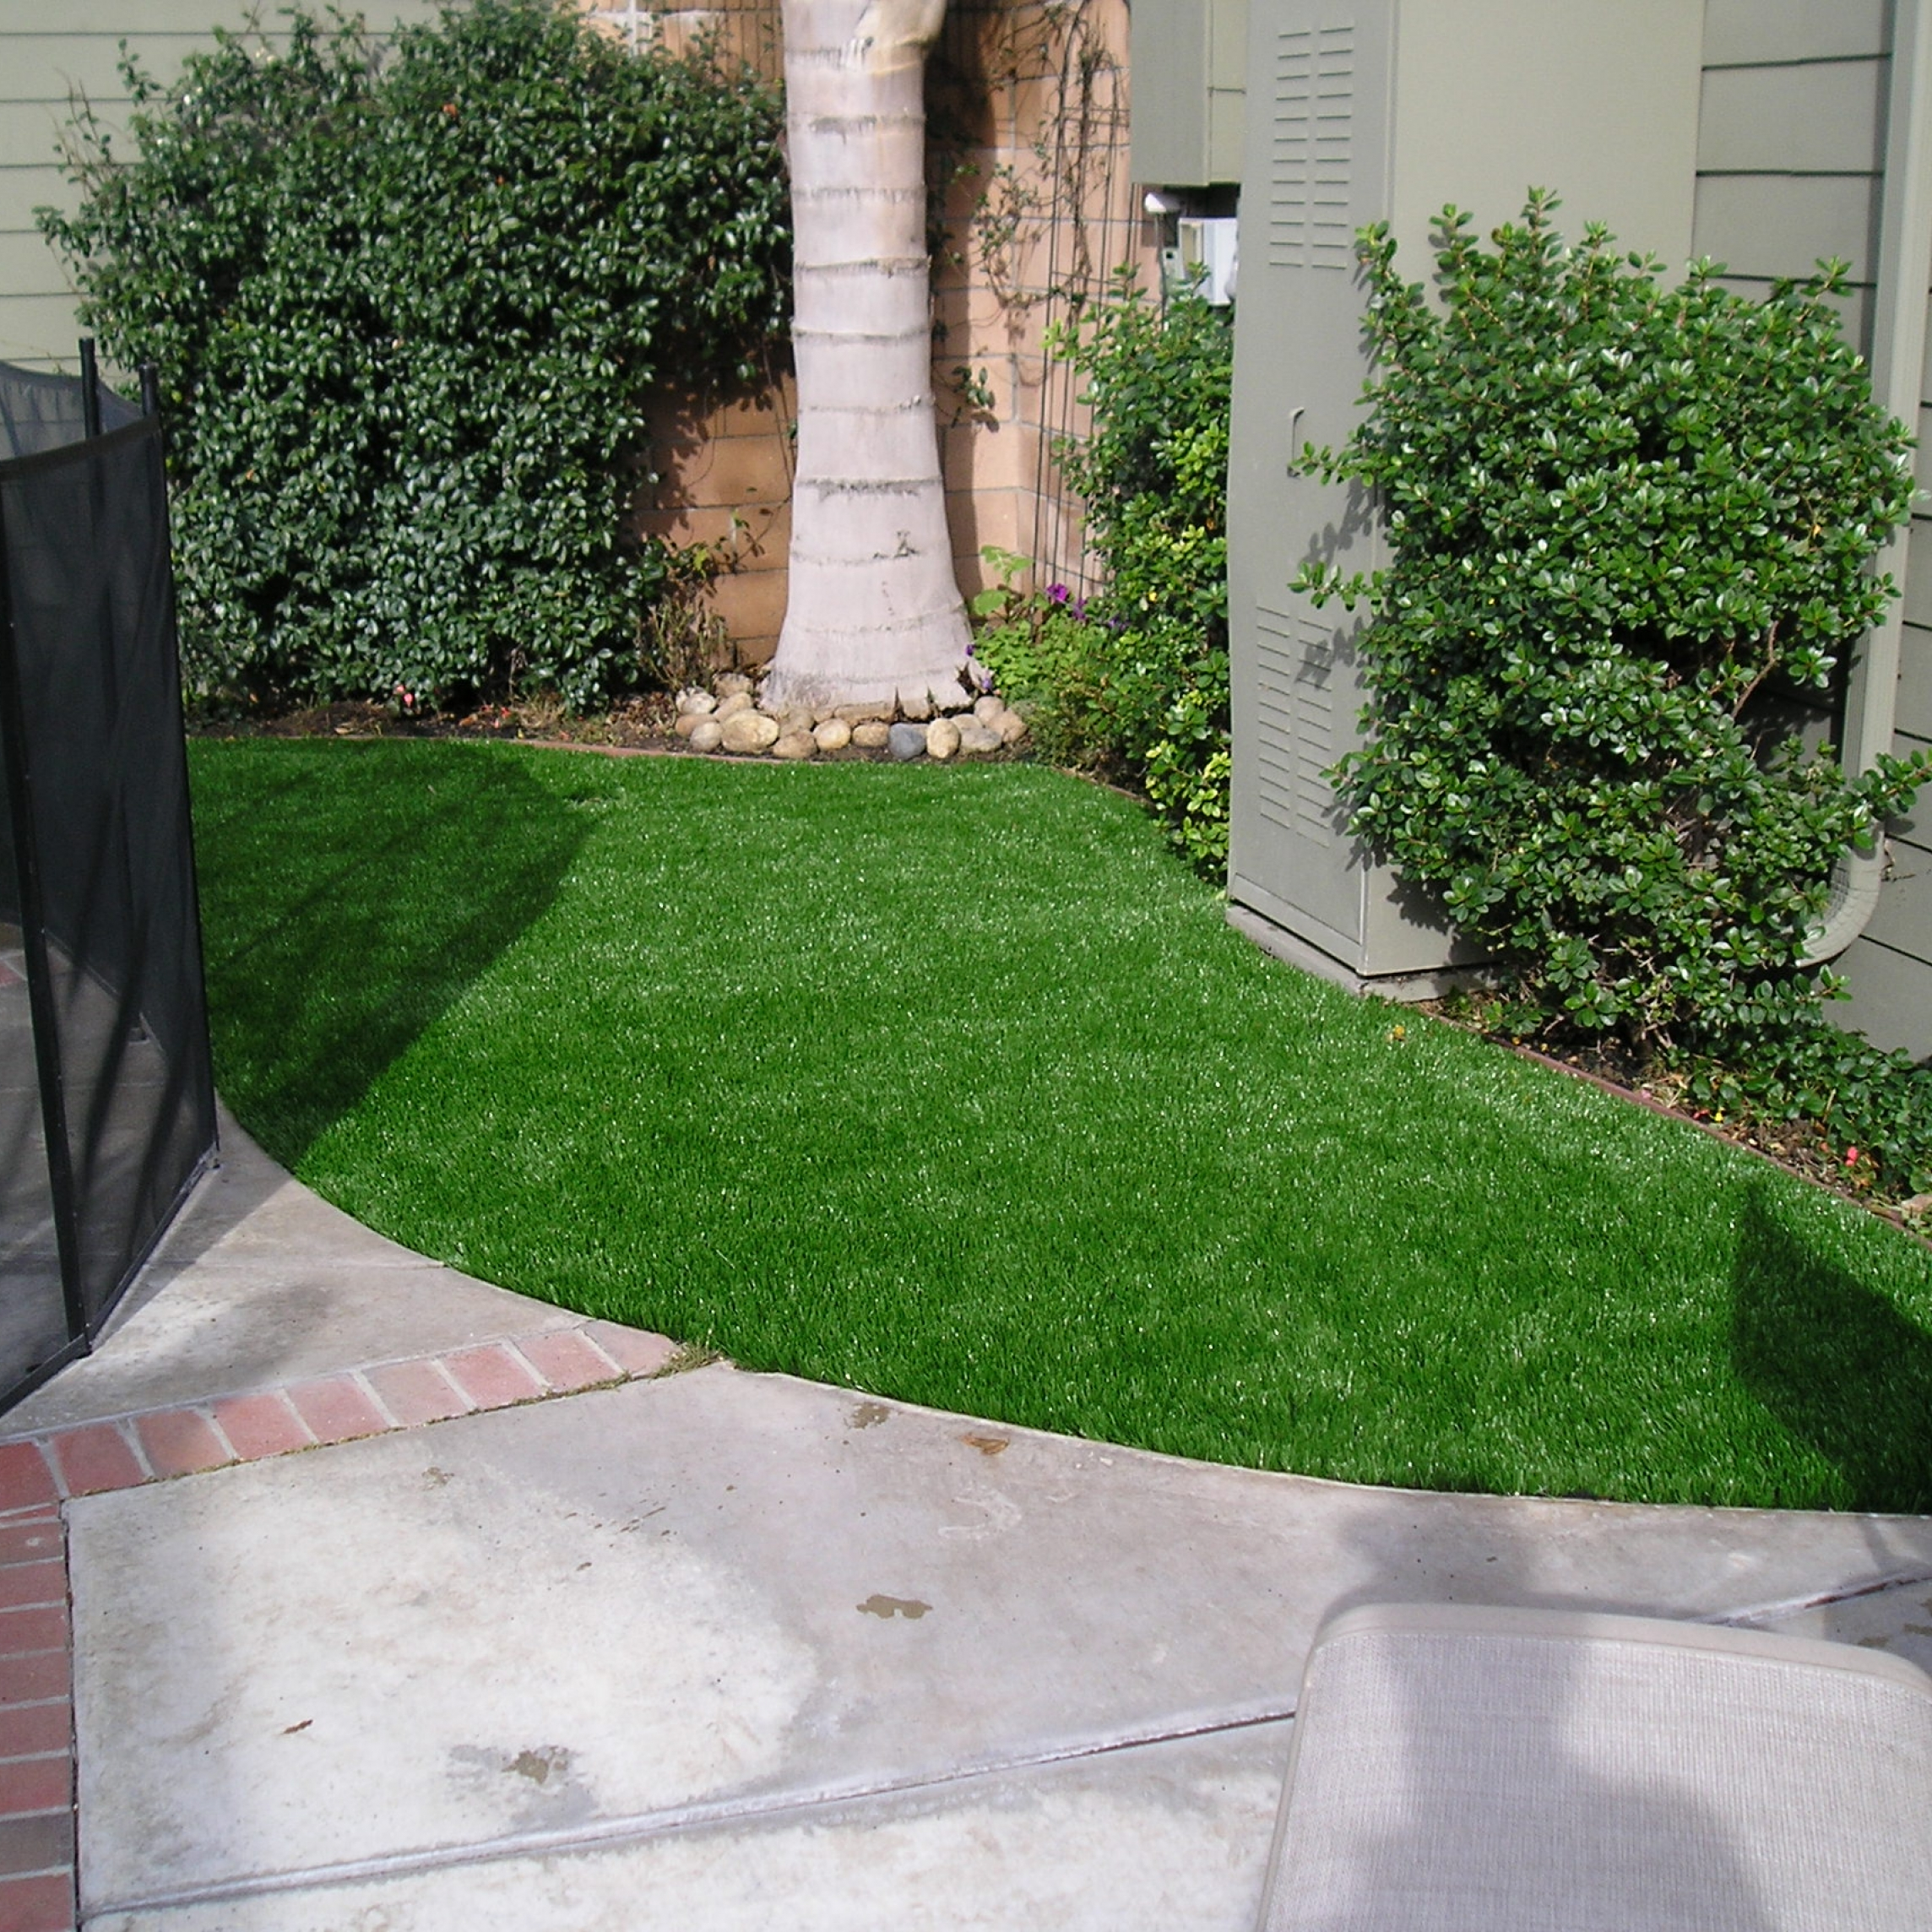 S Blade-90 fake grass for yard,backyard turf,turf backyard,turf yard,fake grass for backyard,used artificial turf